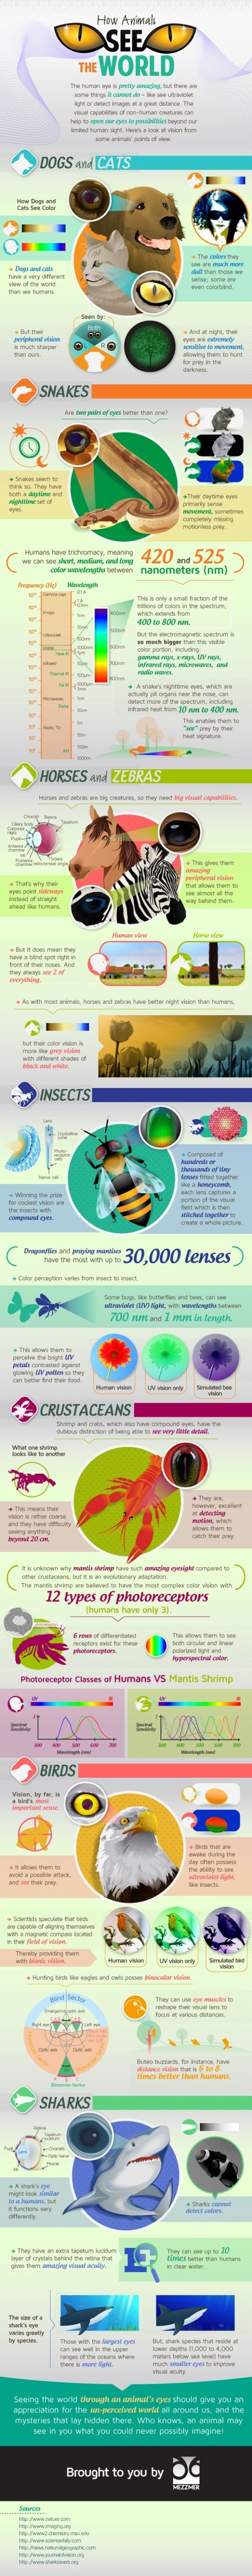 "Hm..ever wonder how you look to your dog or cat? Or to a shark as he swims towards you? Well have no fear, all your answers to questions about what animals see are here in the"" What Animals See the World"" infographic from Mezzmer!"